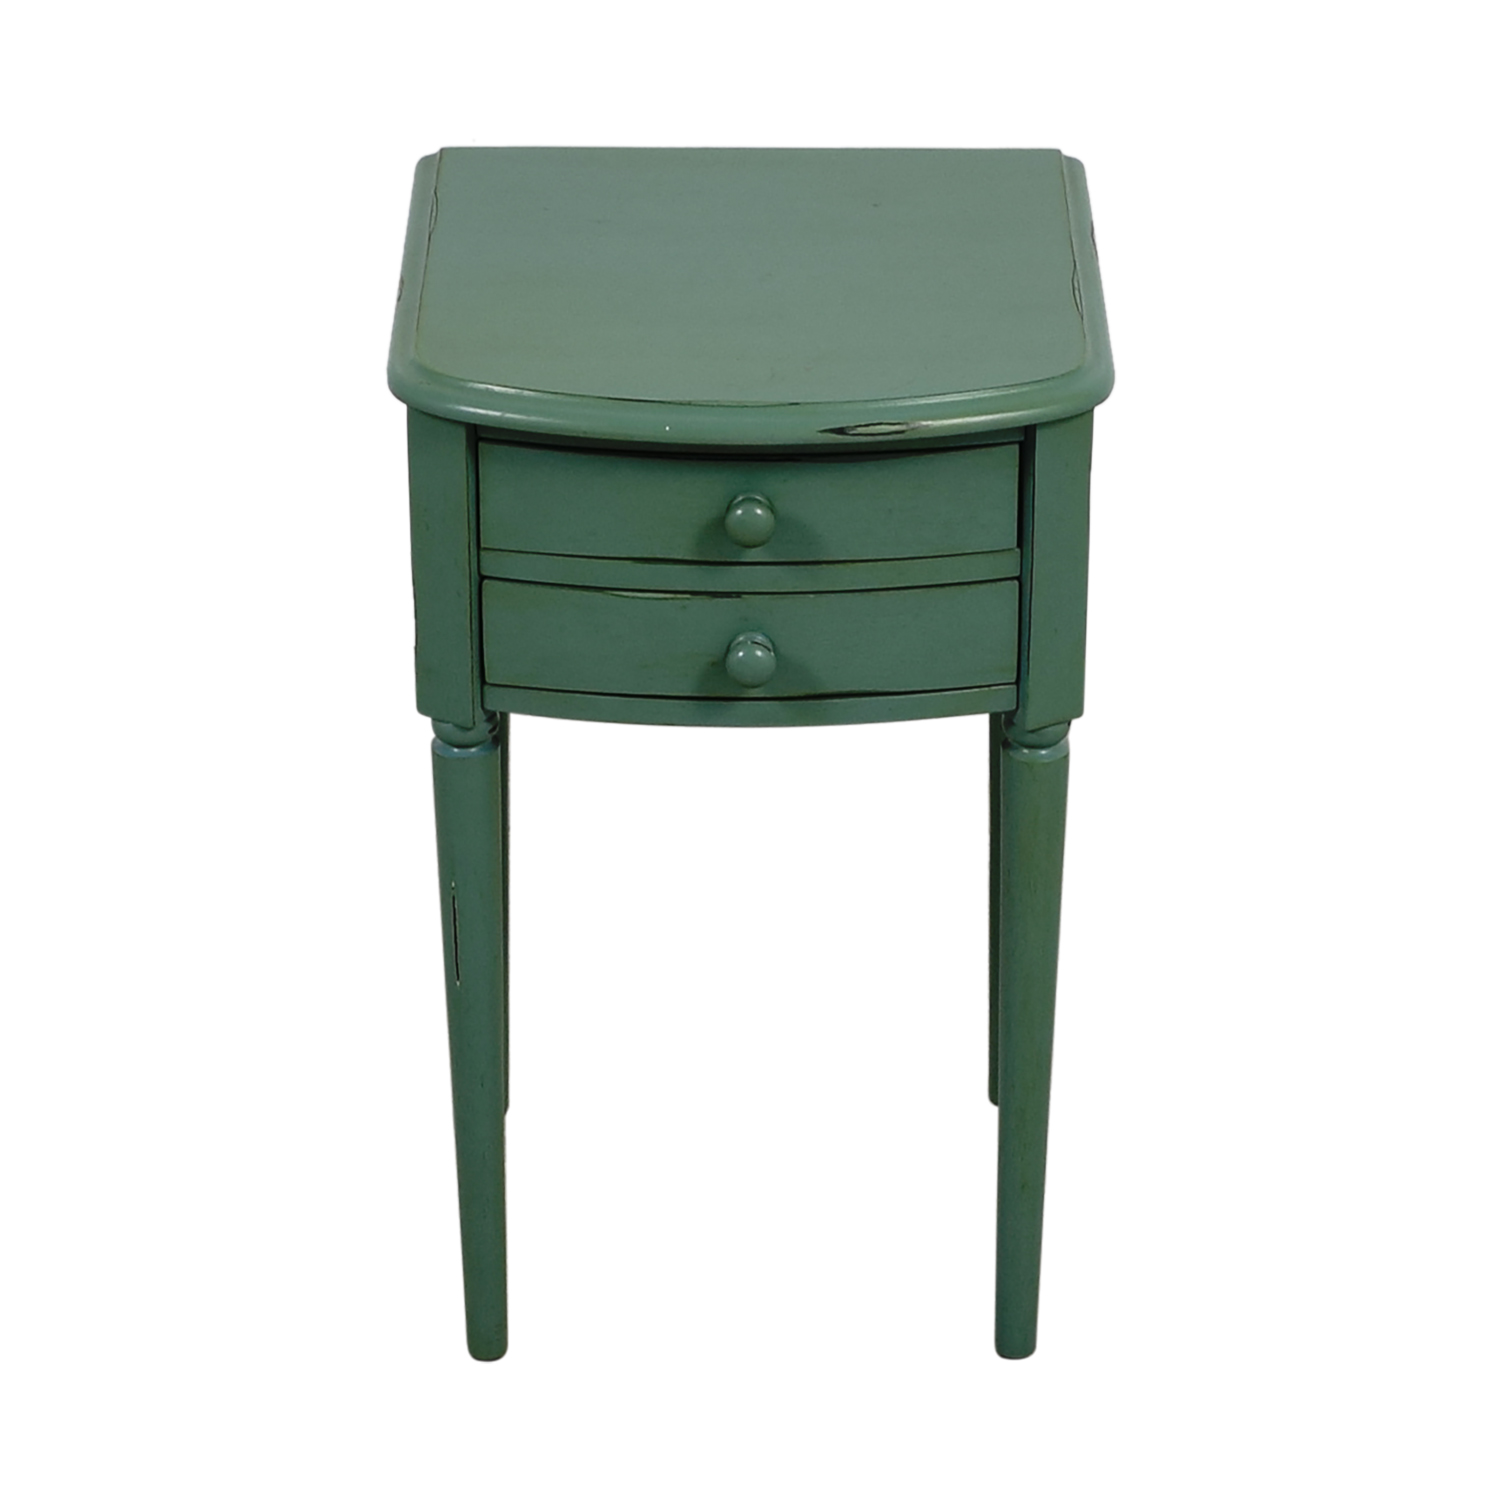 Pottery Barn Vintage Seafoam Nightstand / End Tables